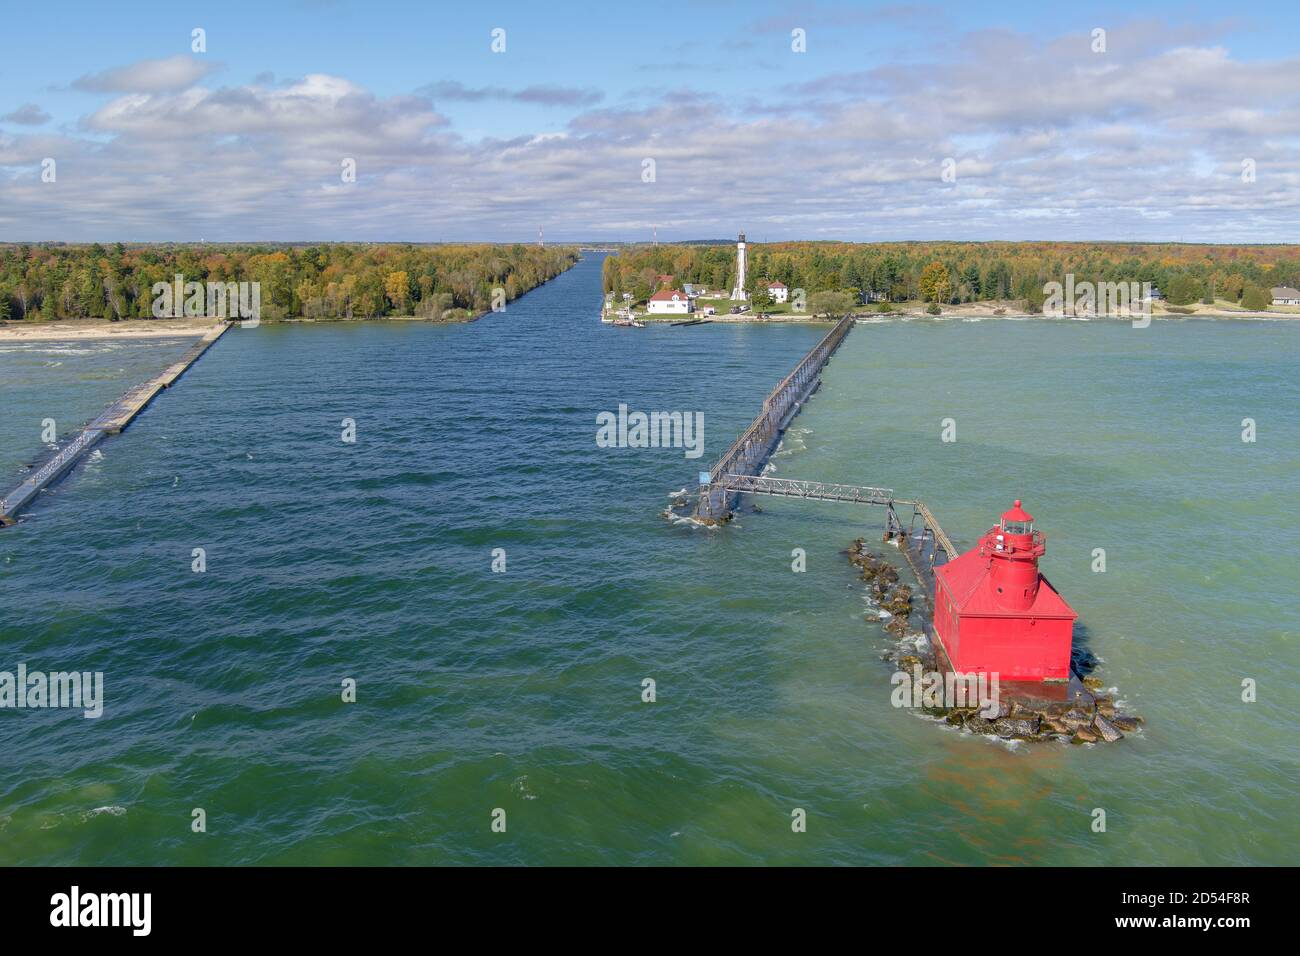 A drone image of a lighthouse in Sturgeon Bay Door County Wisconsin during fall and autumn colors. Stock Photo